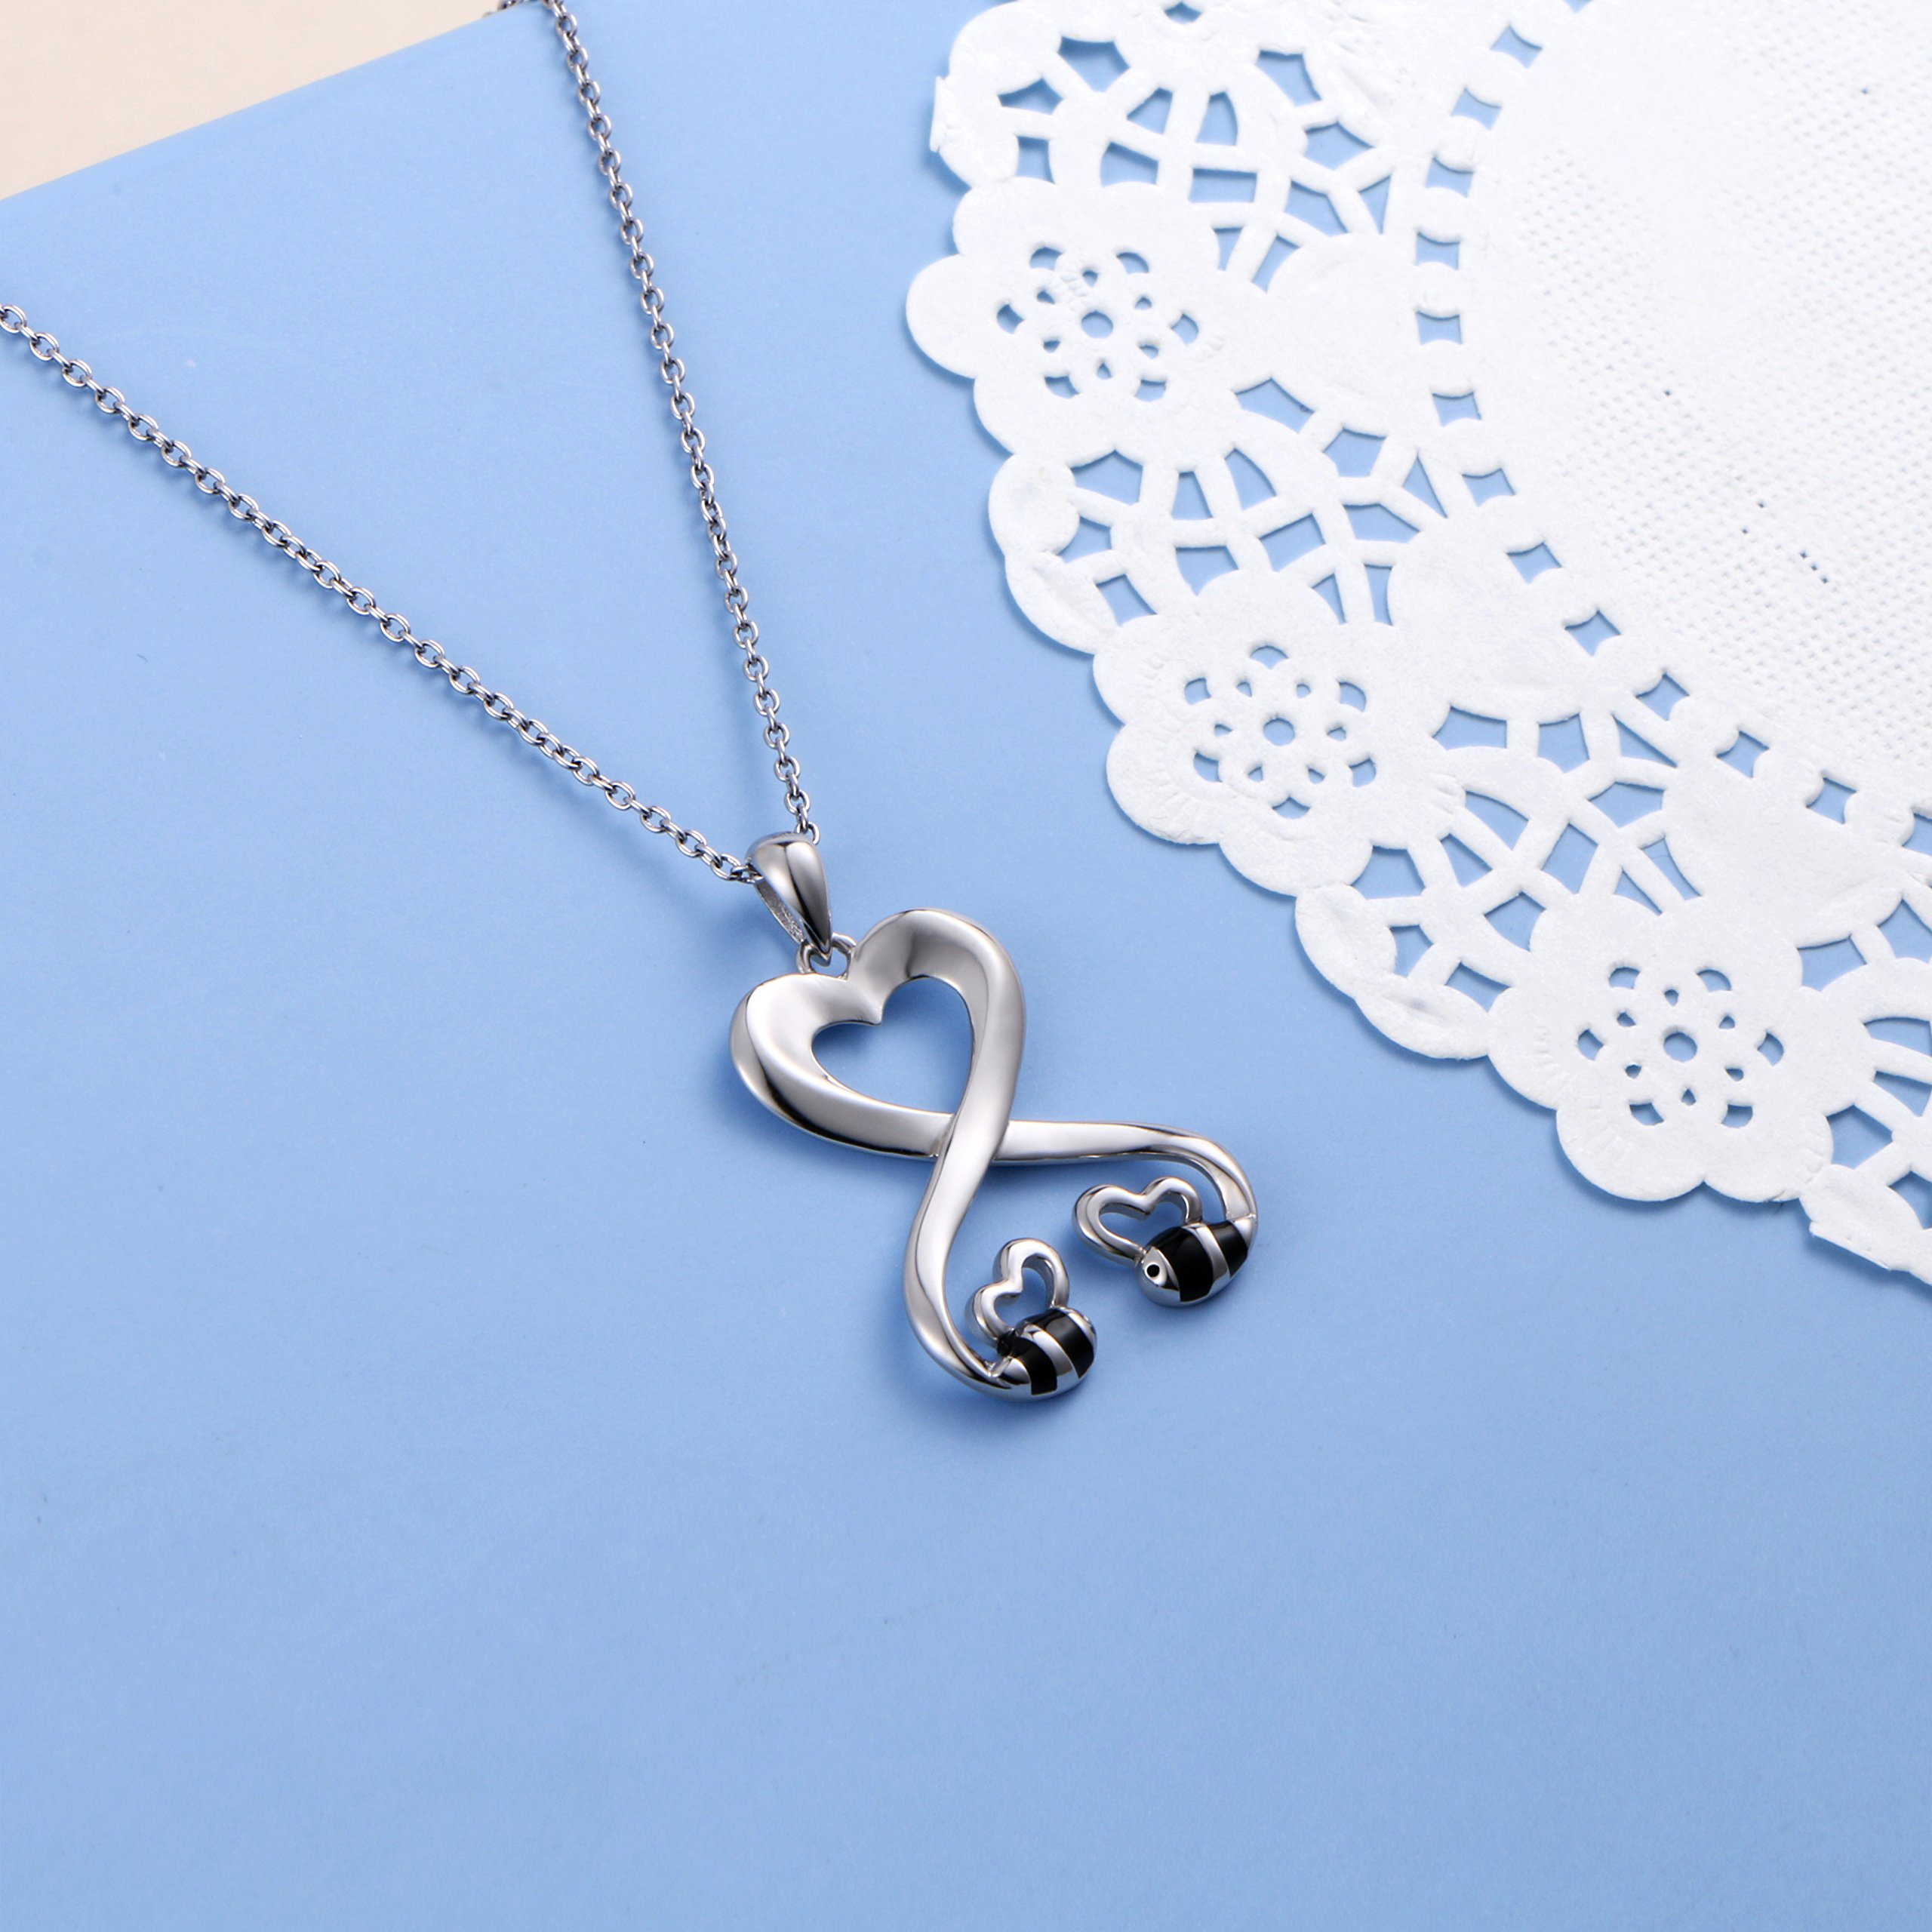 925 Sterling Silver Double Bees Infinity Love Heart Pendant Necklace for Girlfriend, 18'' by SILVER MOUNTAIN (Image #6)